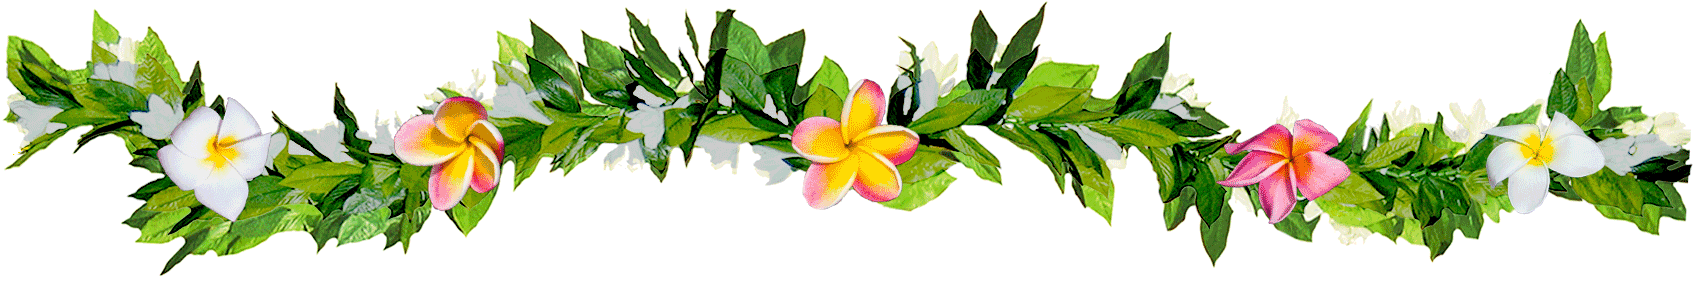 Decorative plumeria lei with green leaves and pink and yellow flowers.